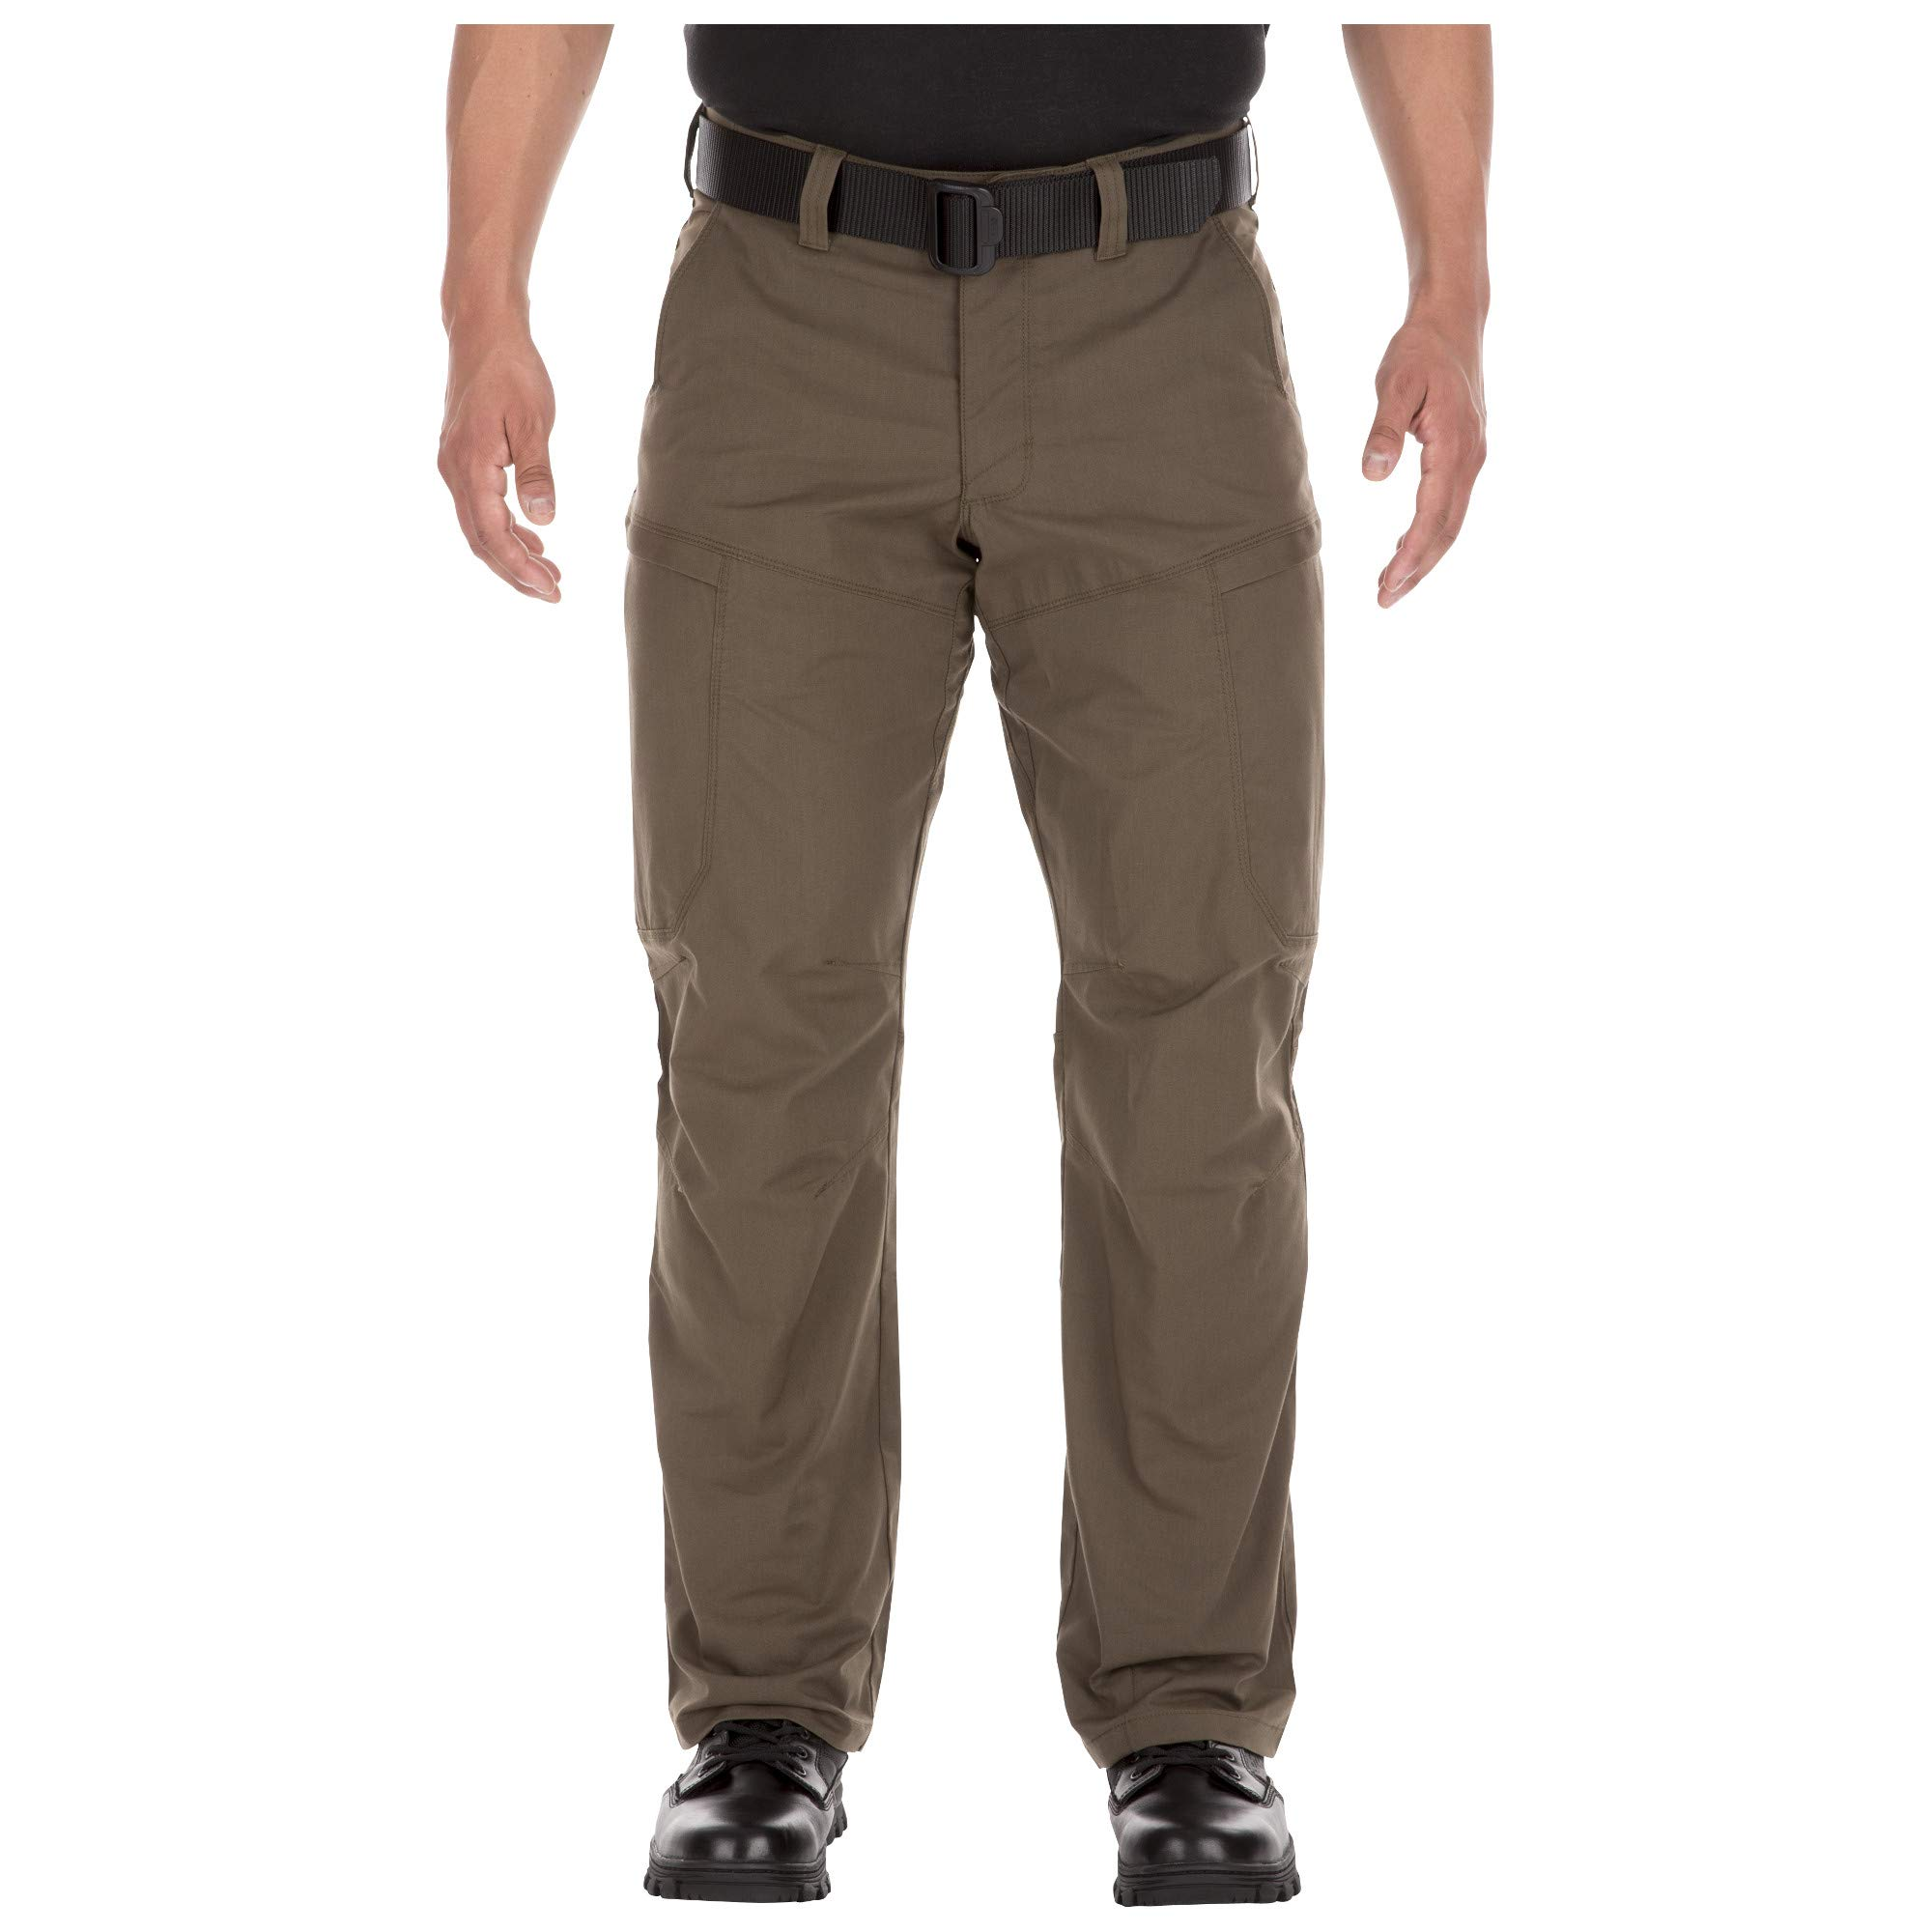 5.11 Men's APEX EDC Stealth Cargo Pocket Tactical Pant Style 74434, Tundra, 28W x 34L